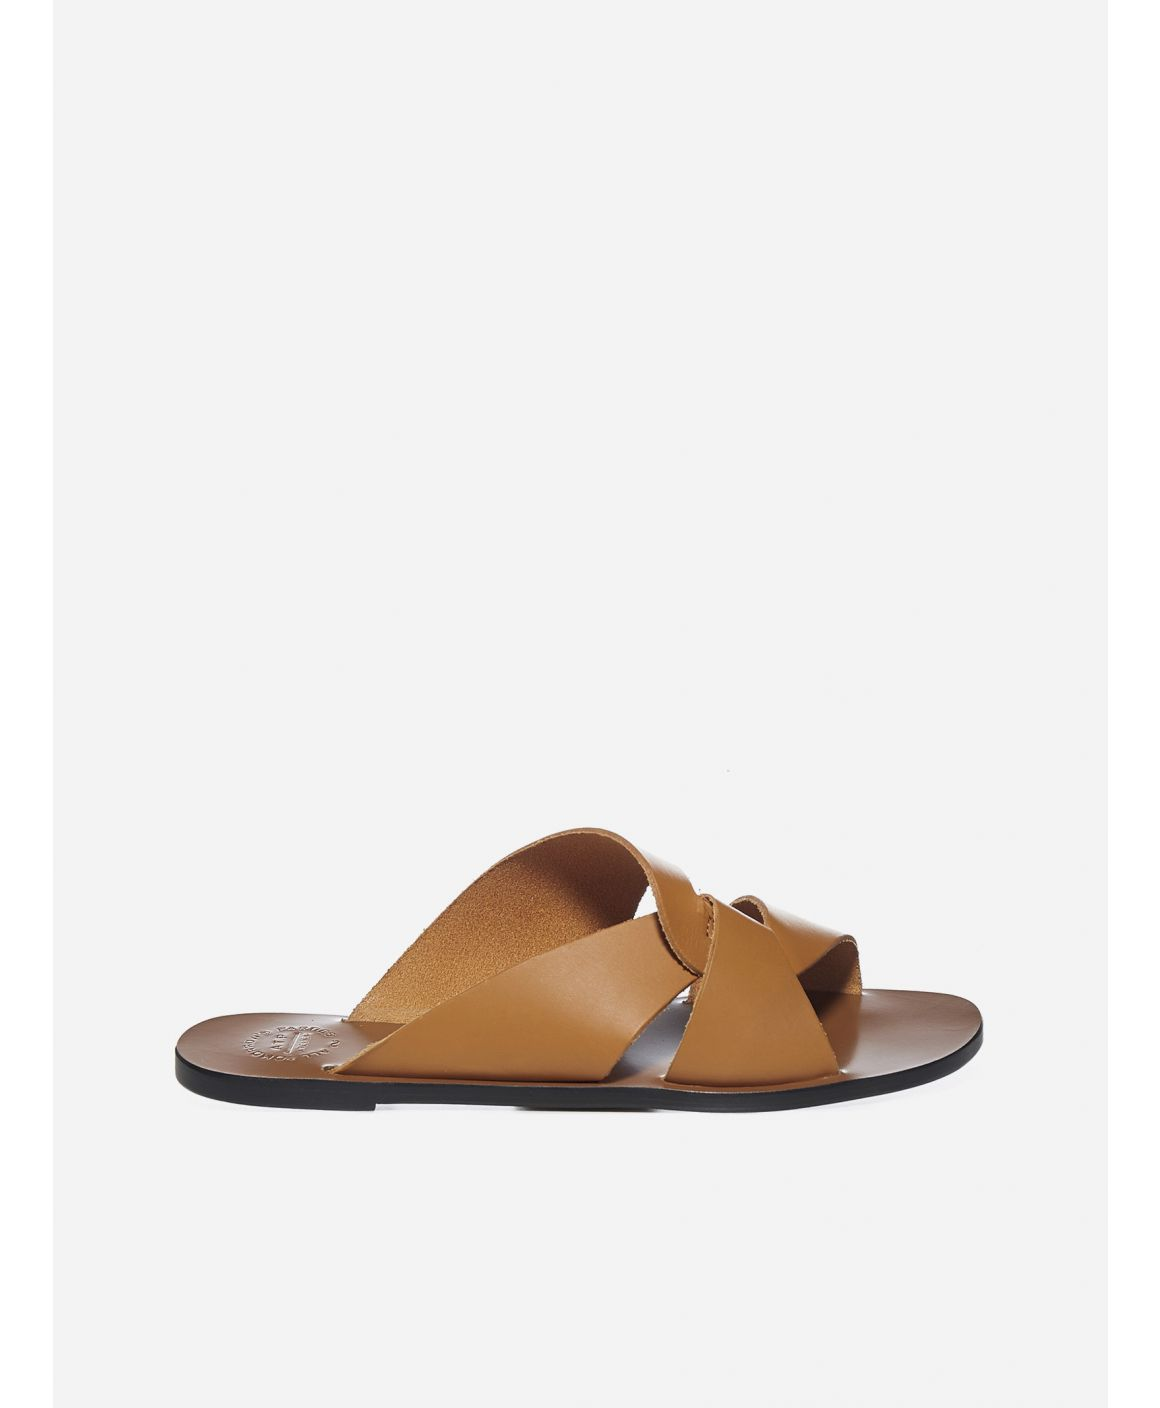 Allai leather flat sandals